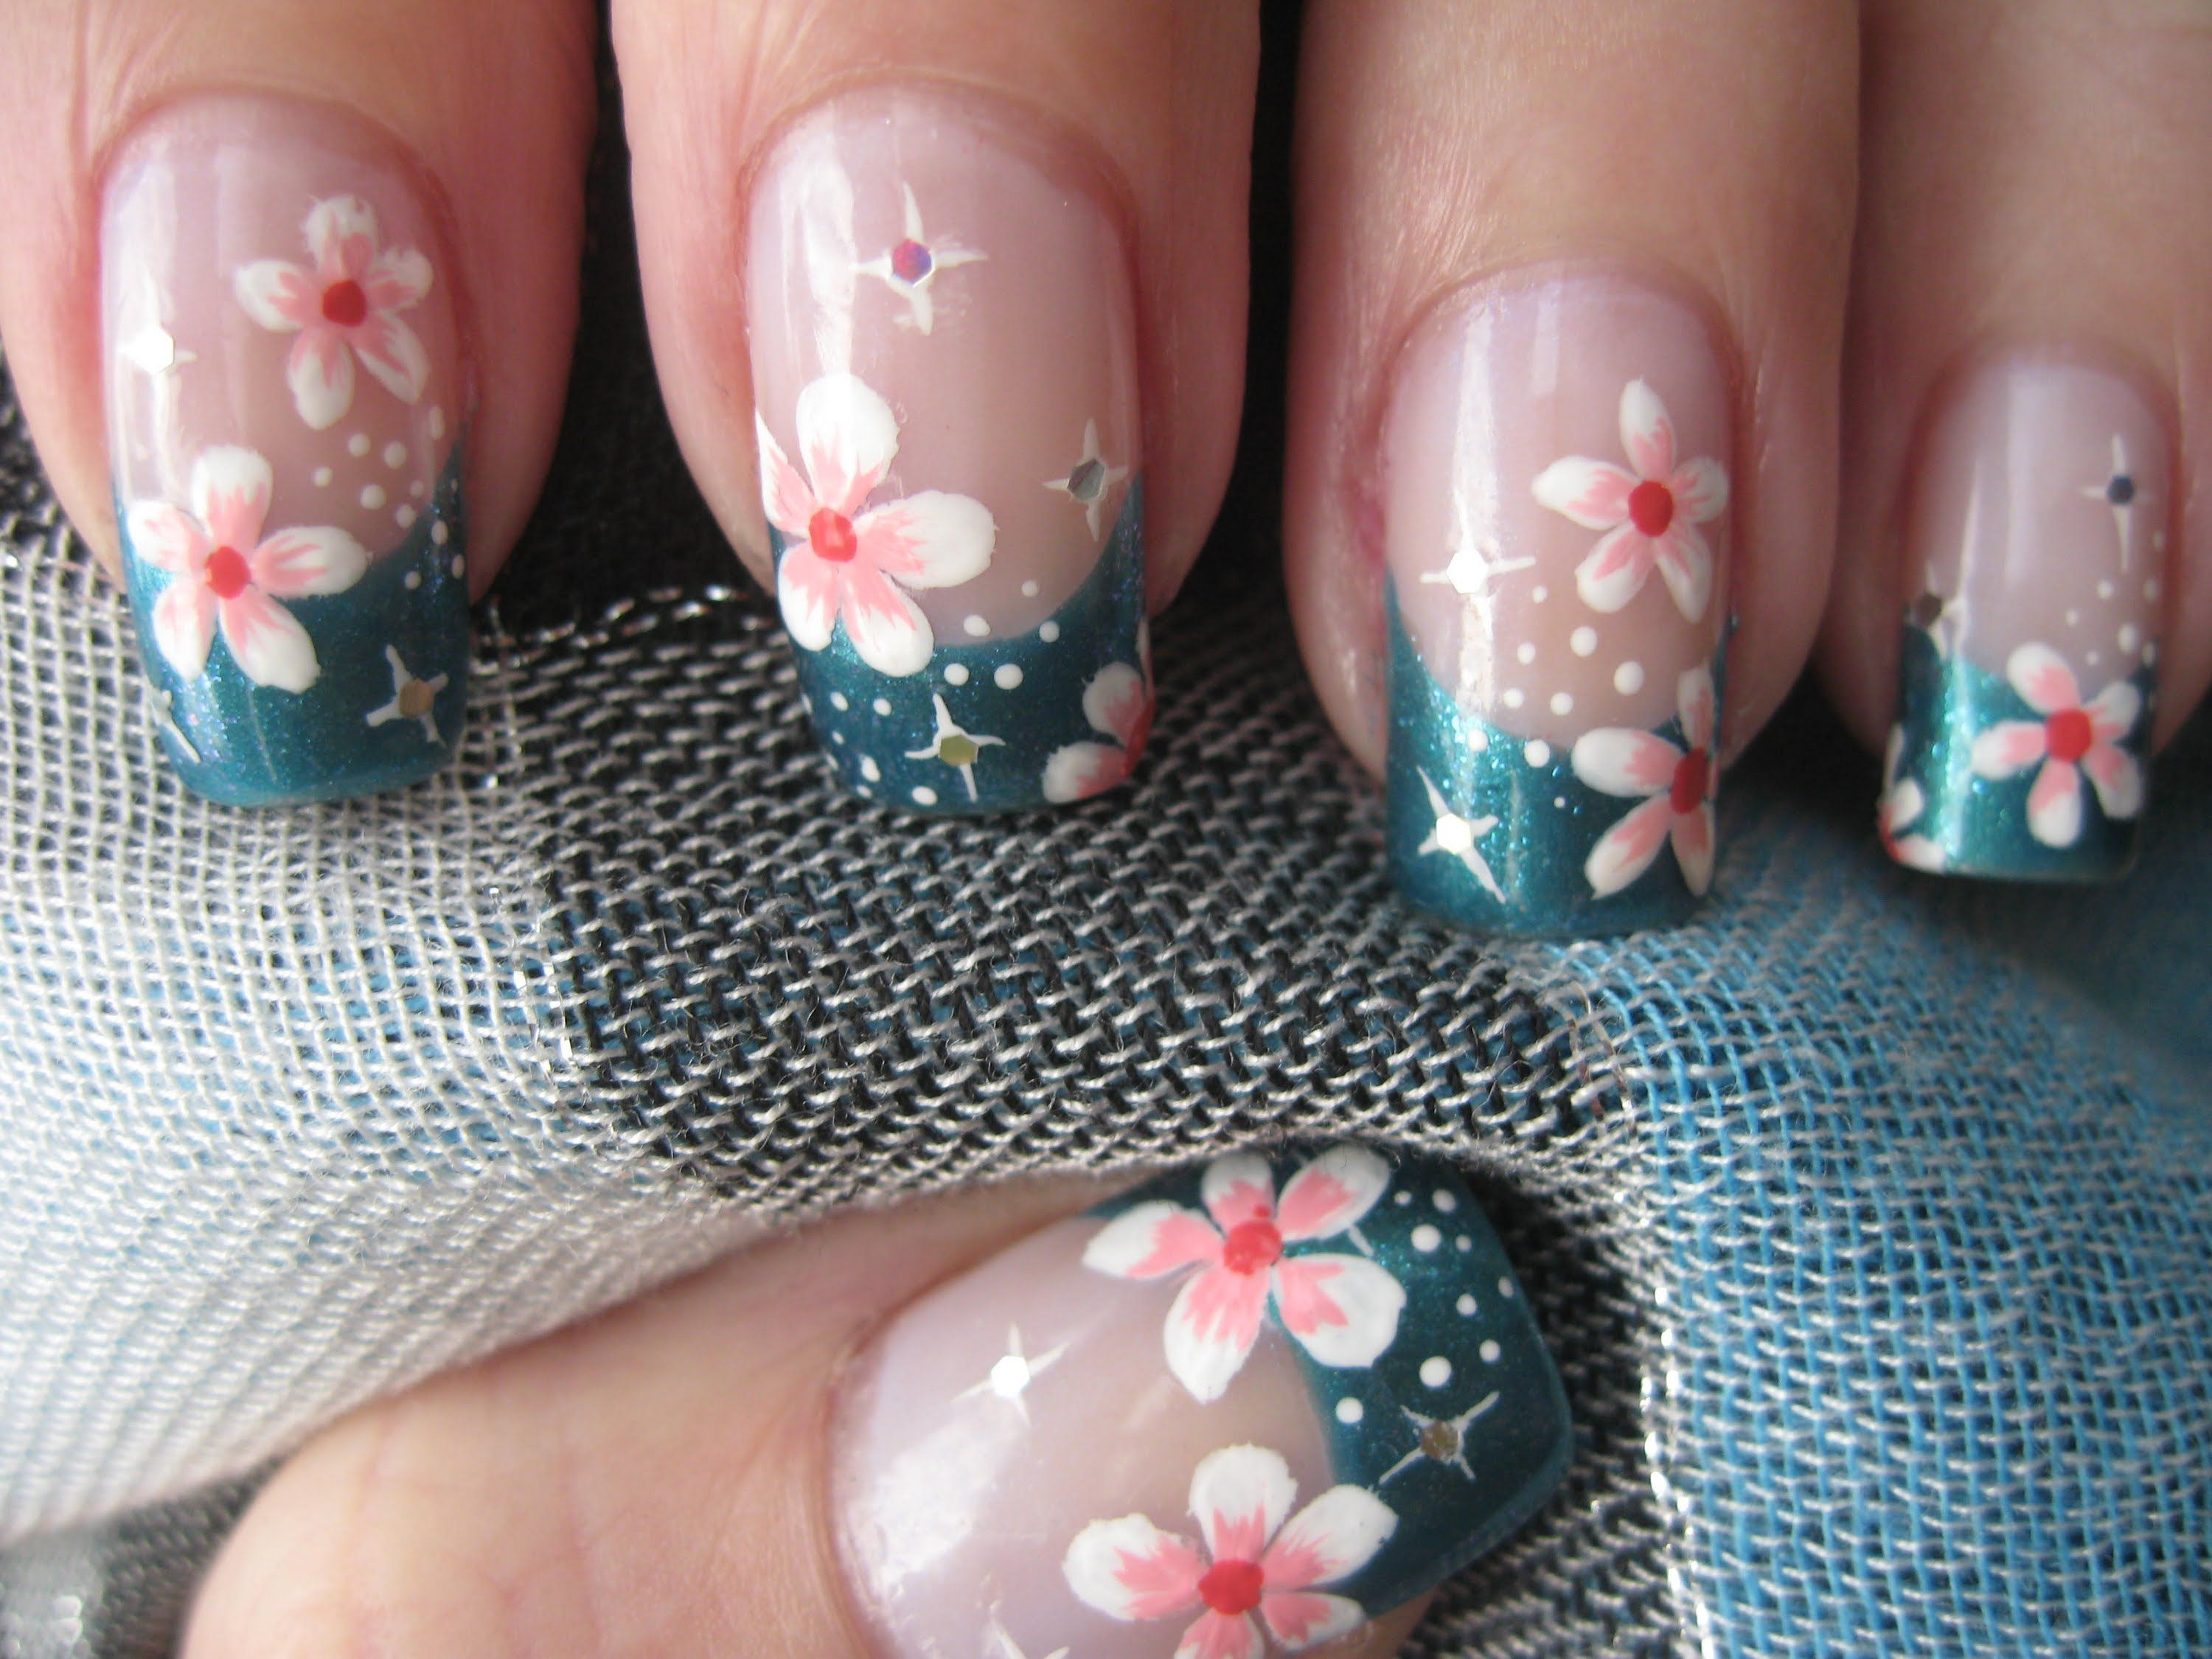 Nail art: French tip with flowers and stars | Easy & Detailed Nail ...